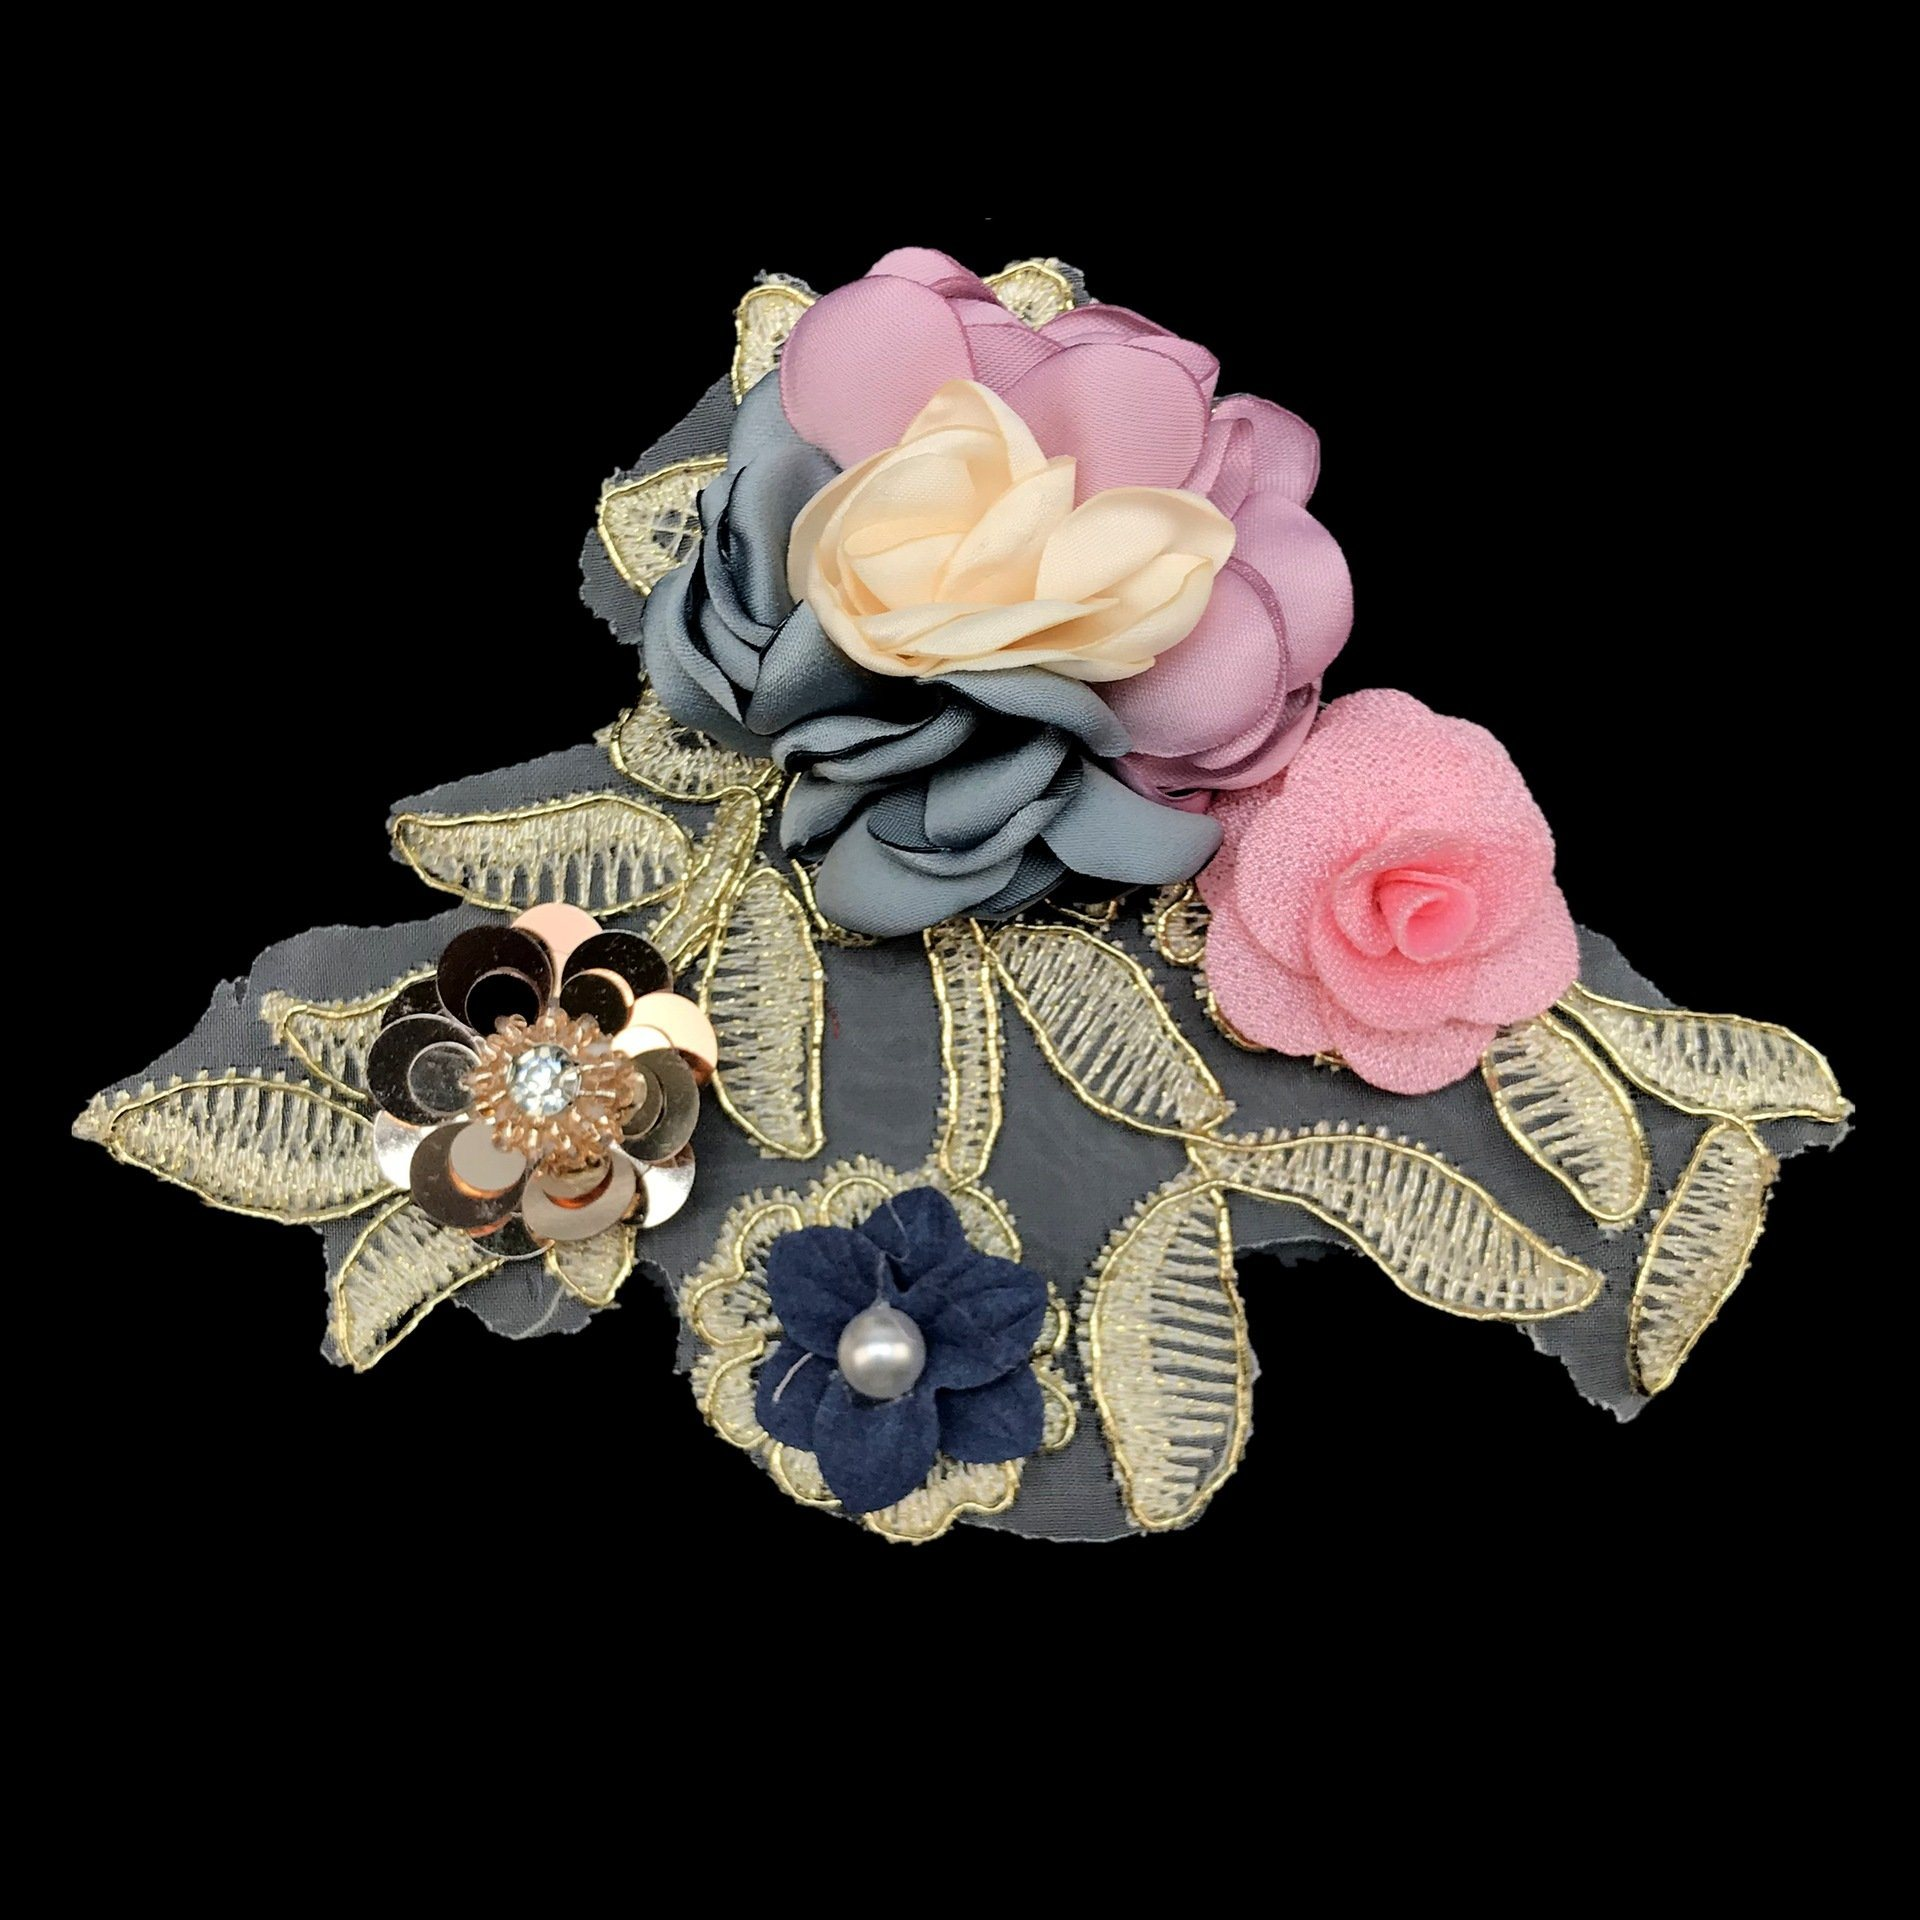 3D White Rose Flower Embroidery Iron On Applique Patch